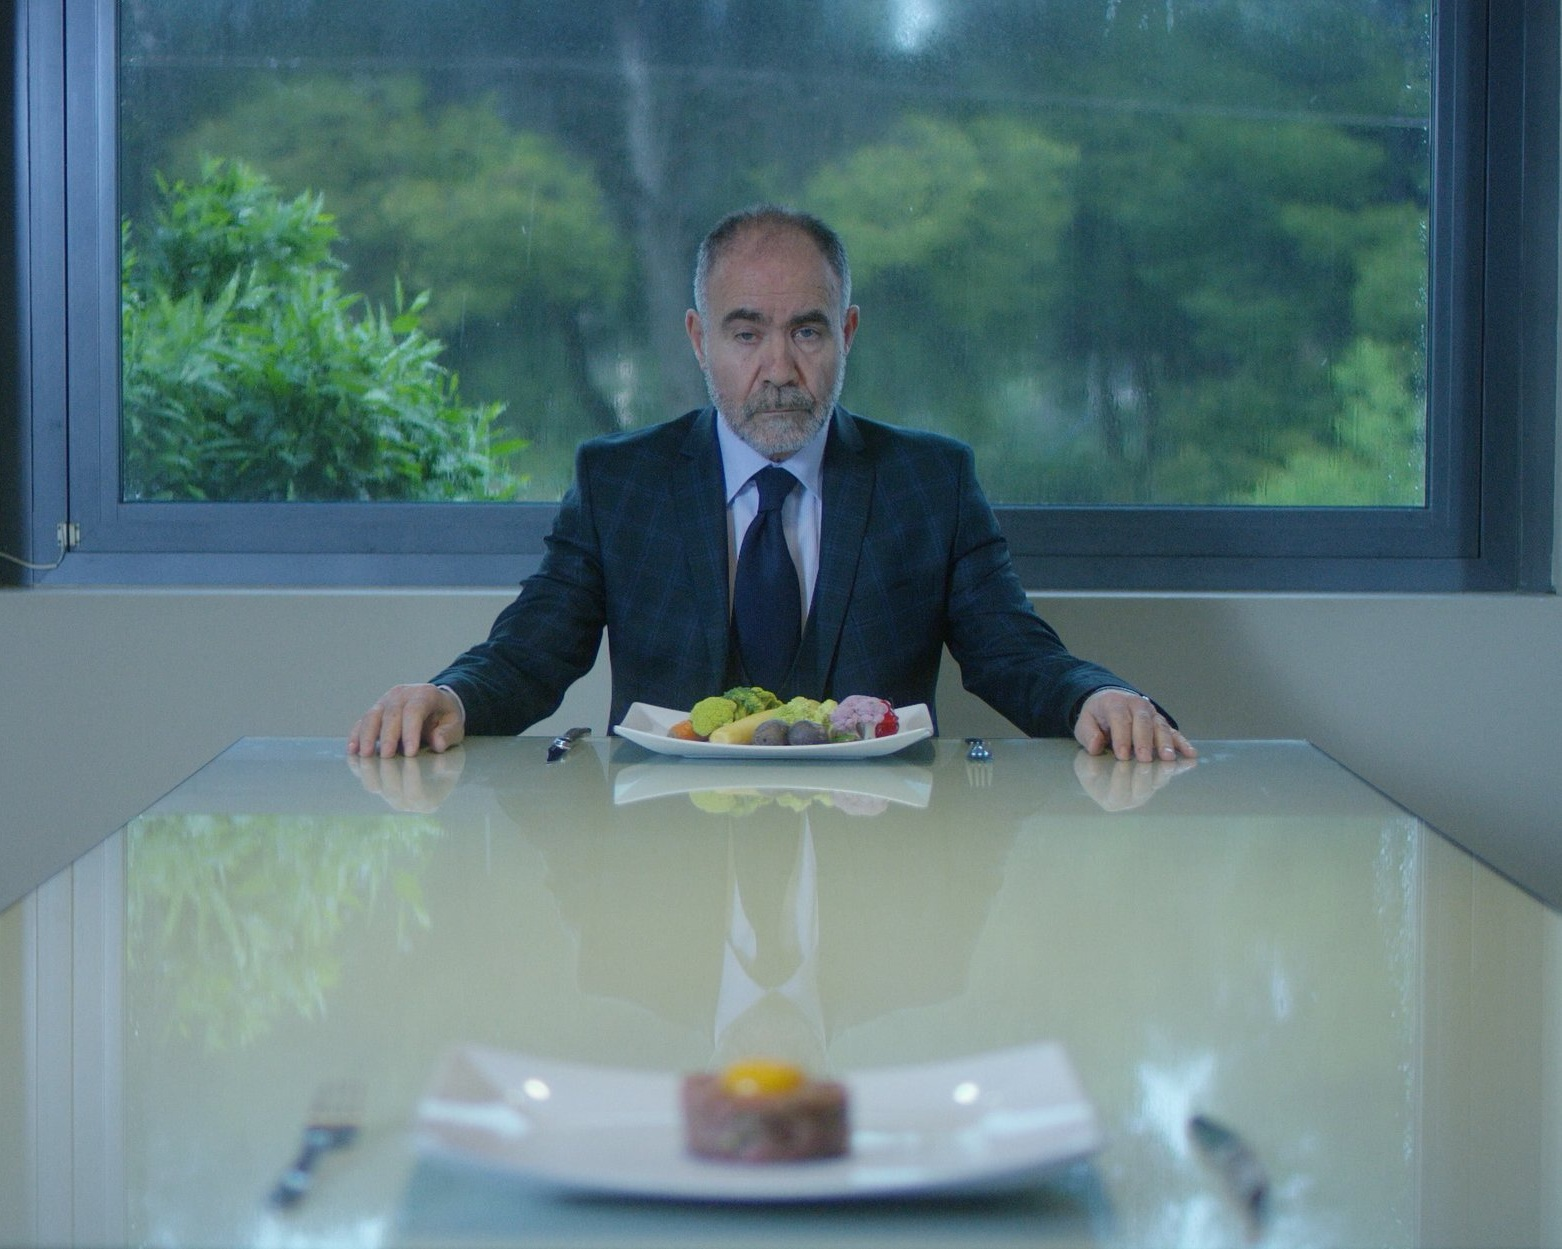 Ivan - Directed by Panagiotis Kountouras, GreeceCan you consume your human nature in a meal? When hidden instinct is transformed into morbid obsession, then self-preservation turns into a meaningless ritual of imitation, an act of empty logic.